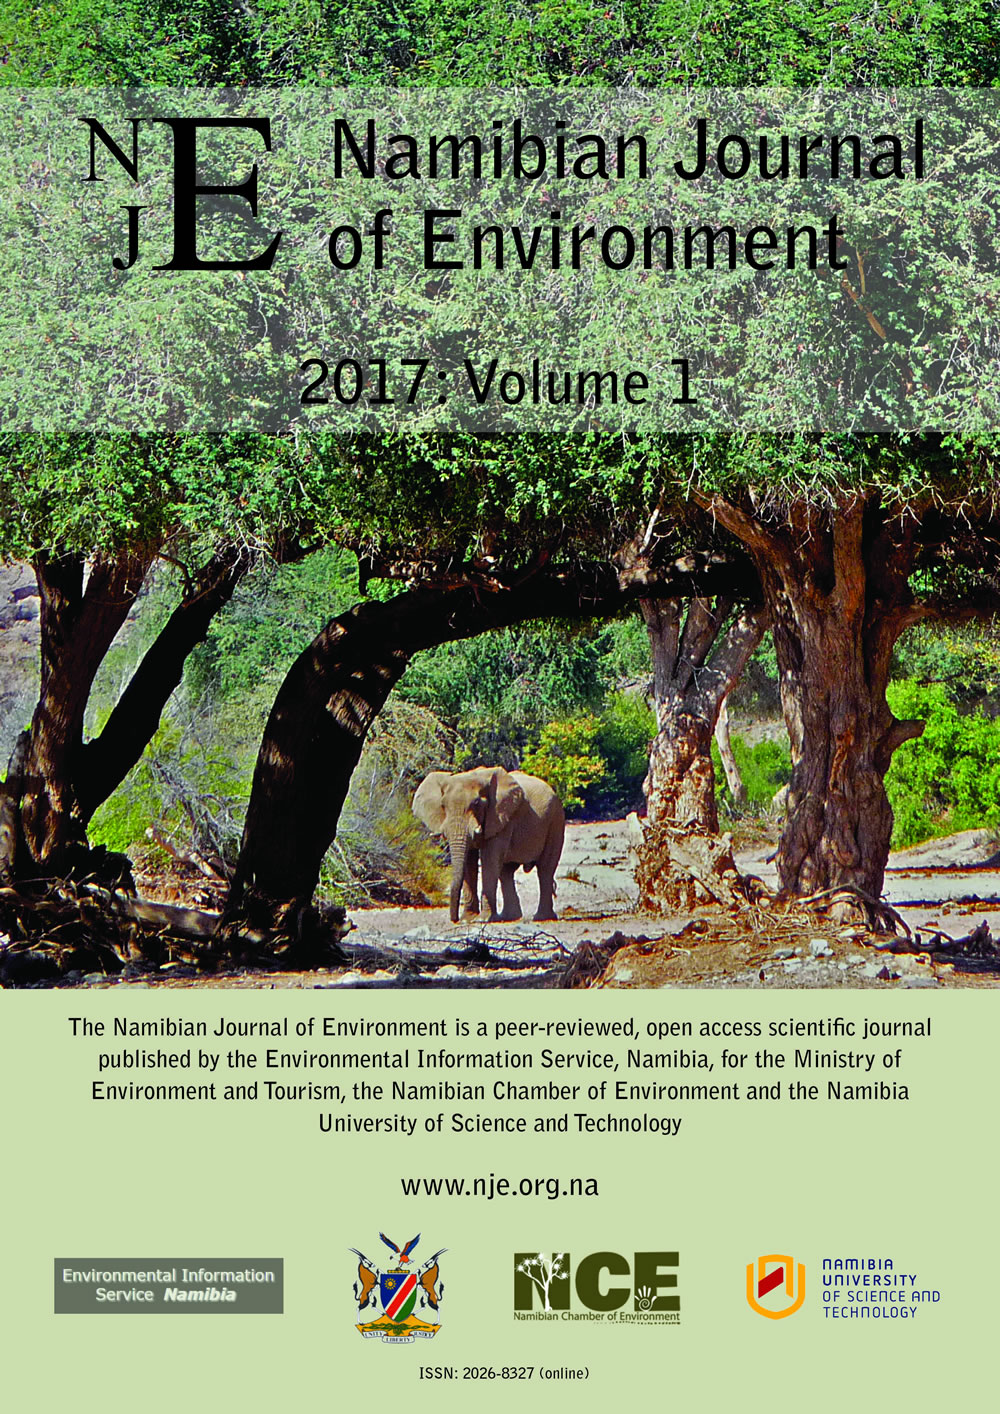 Cover of Namibian Journal of Environment 2017 Volume 1